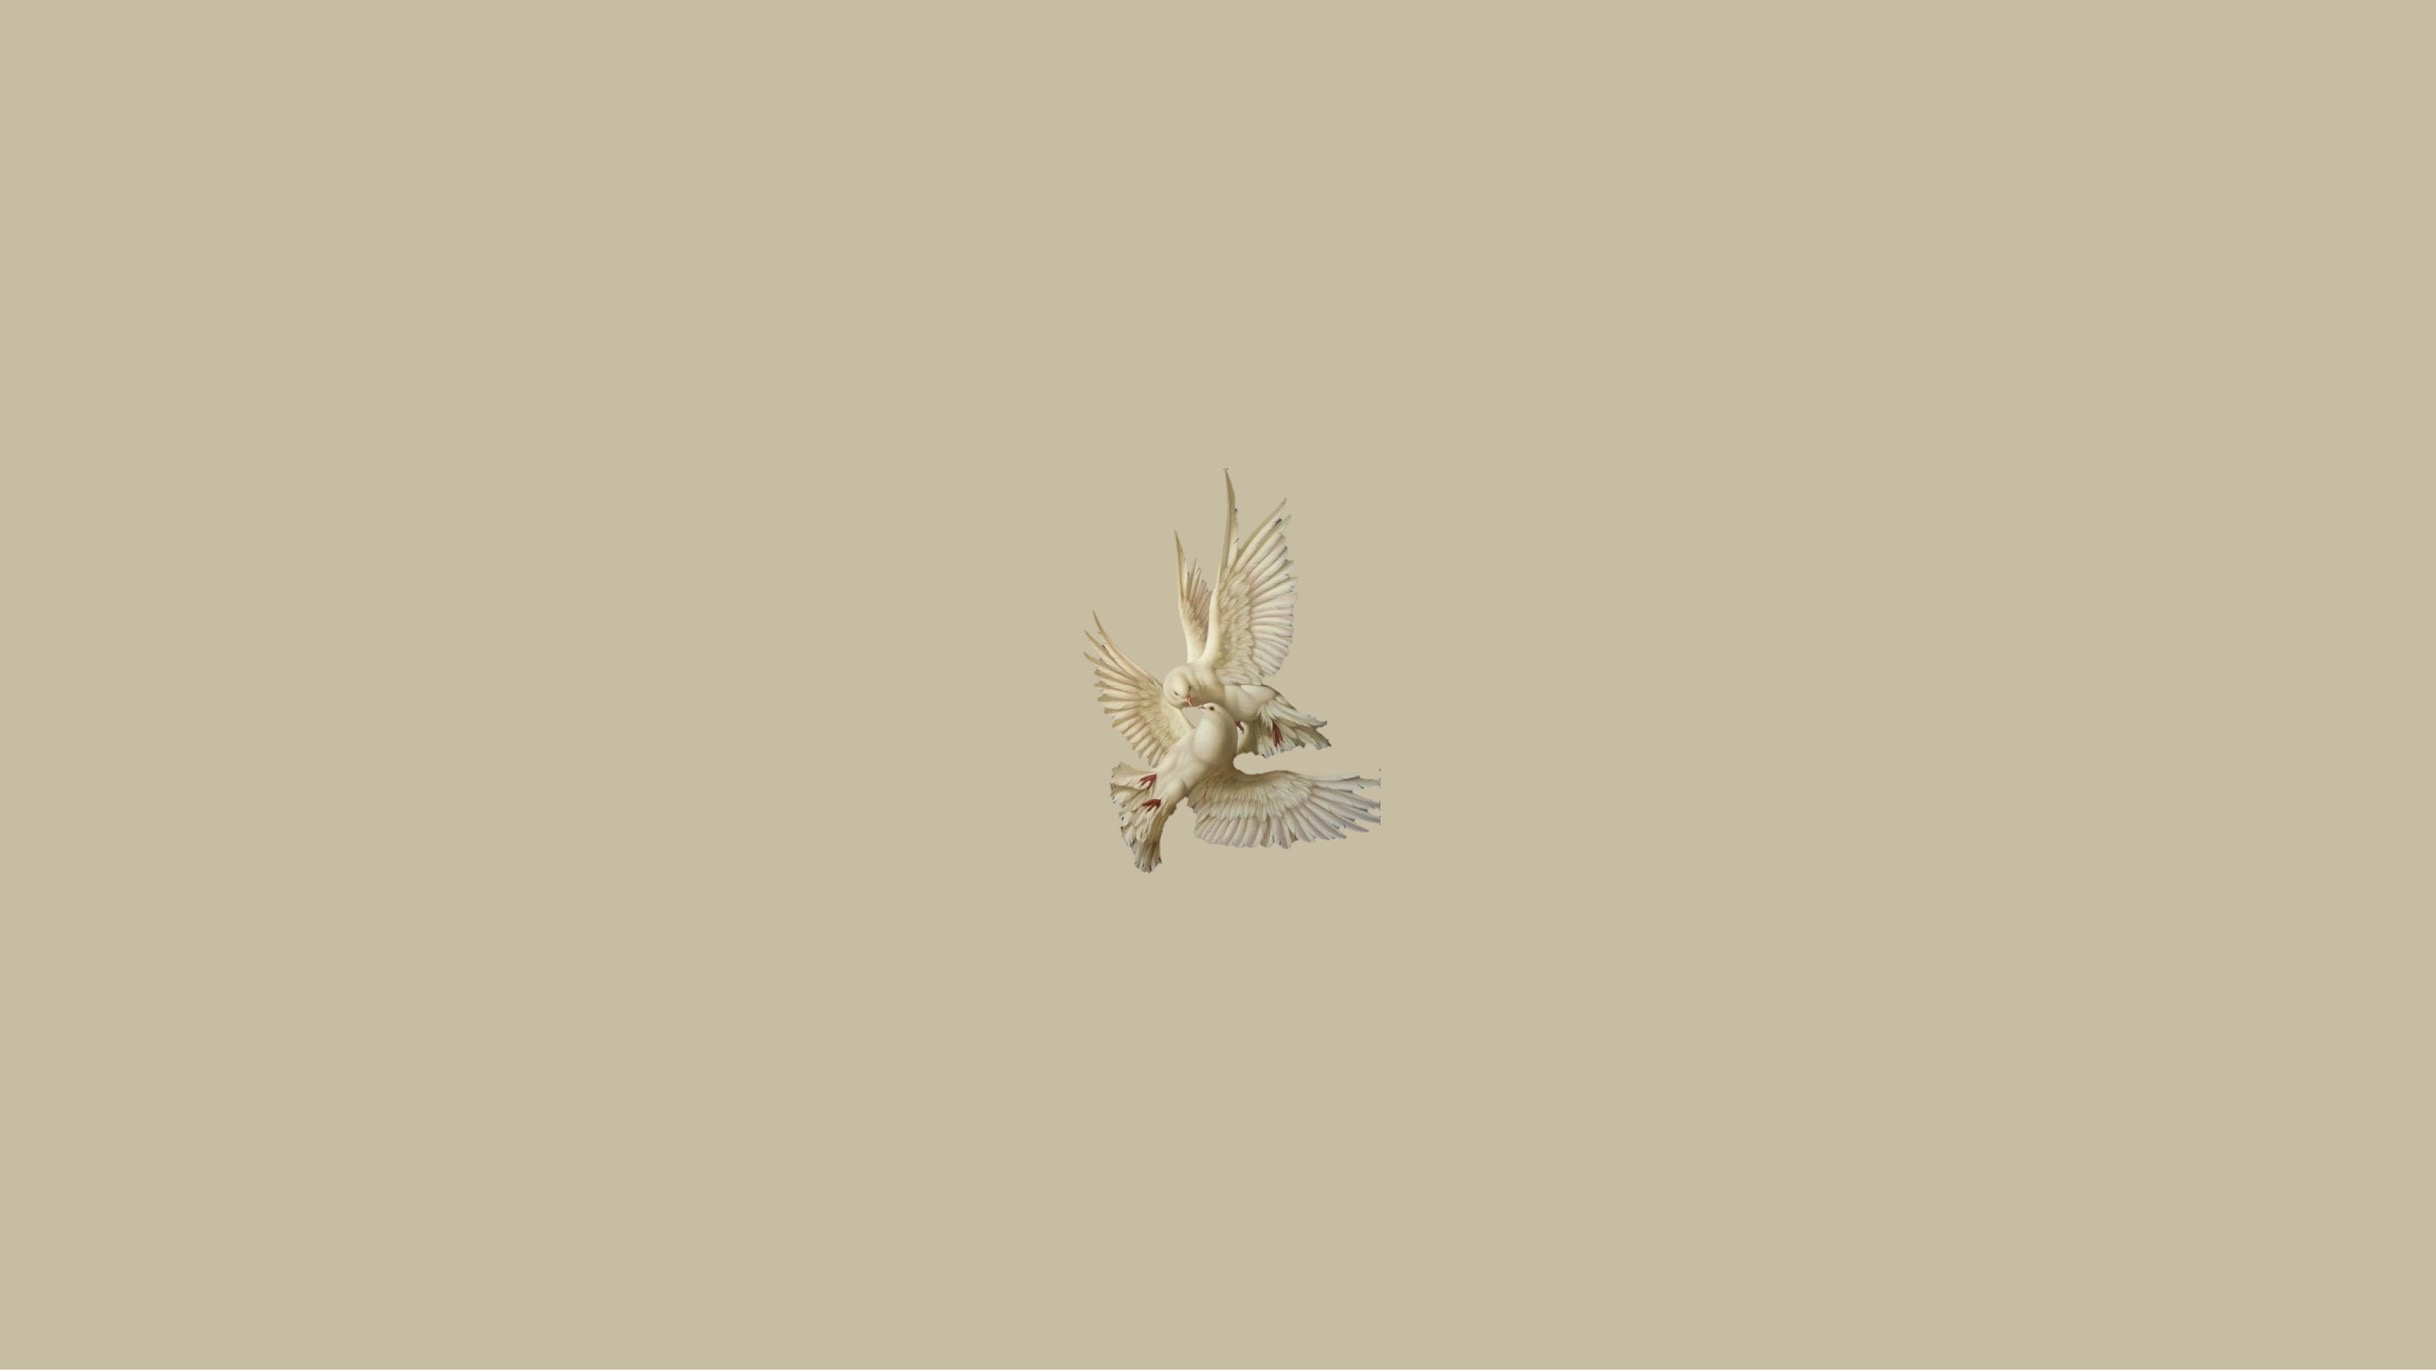 Aesthetic Dove Doves Beige Image By Simplenesss